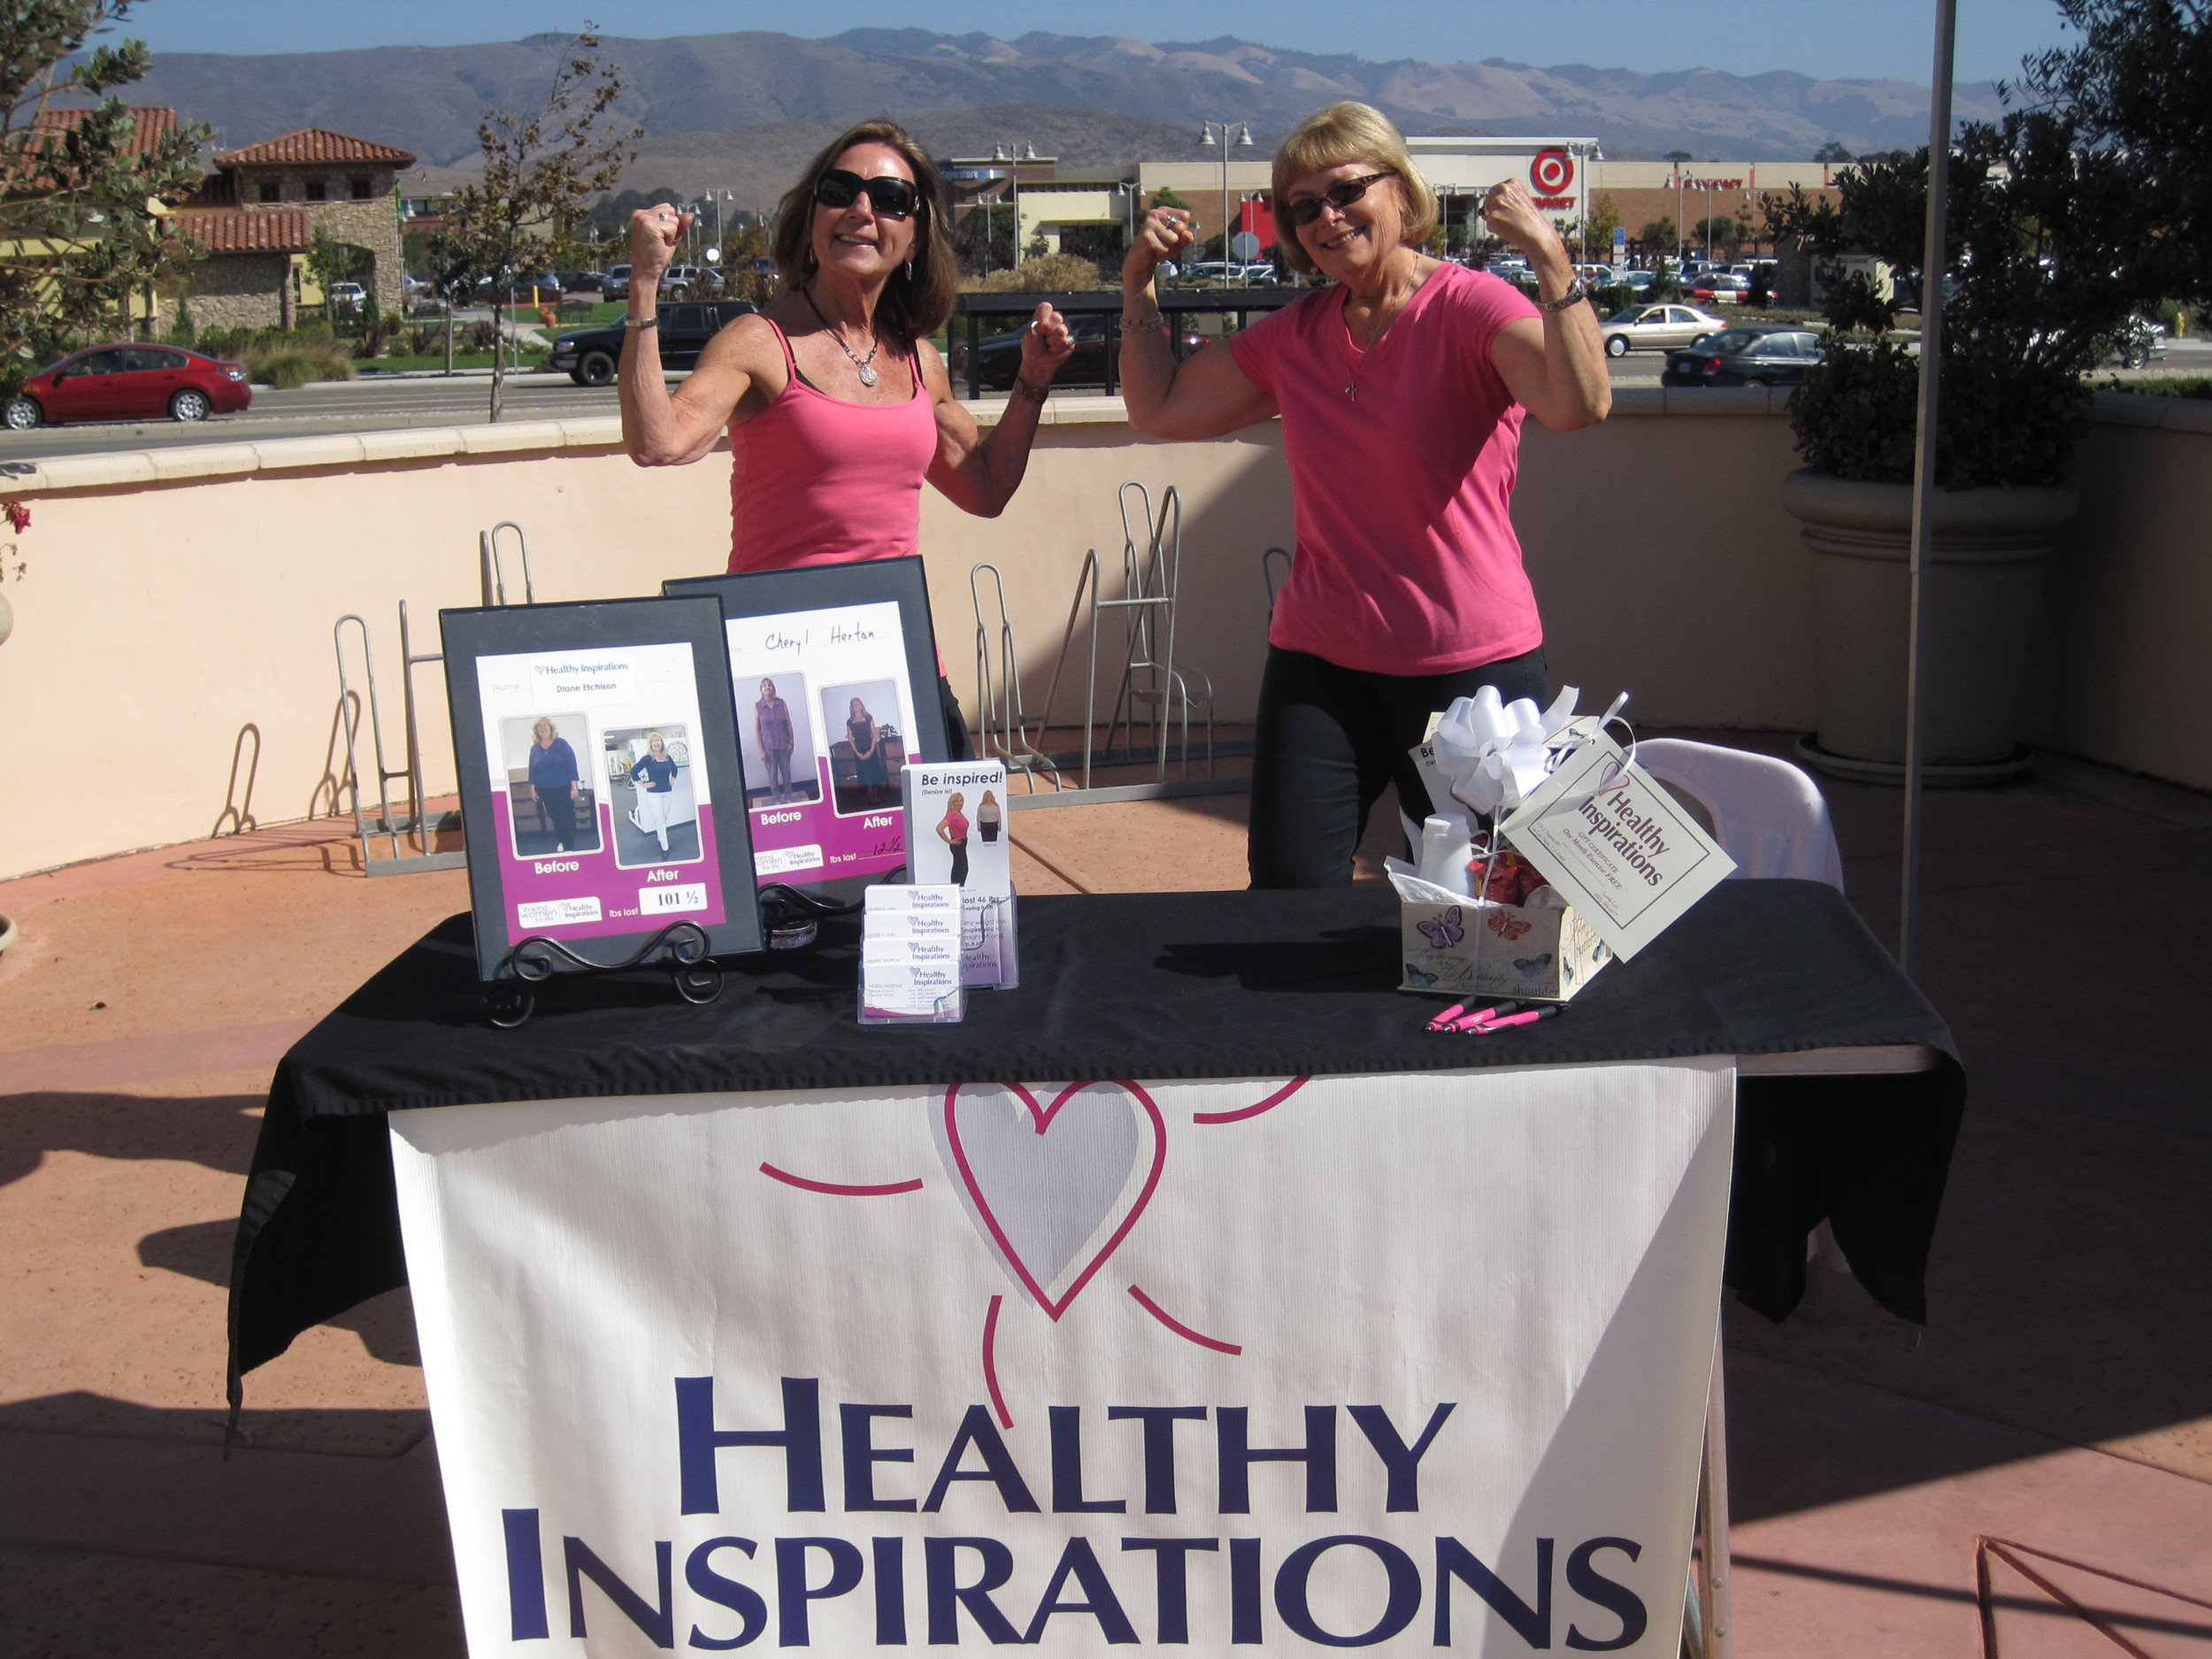 Linda Lex and Diane Etchison at the Healthy Inspirations' booth outside of The Vitamin Shoppe.